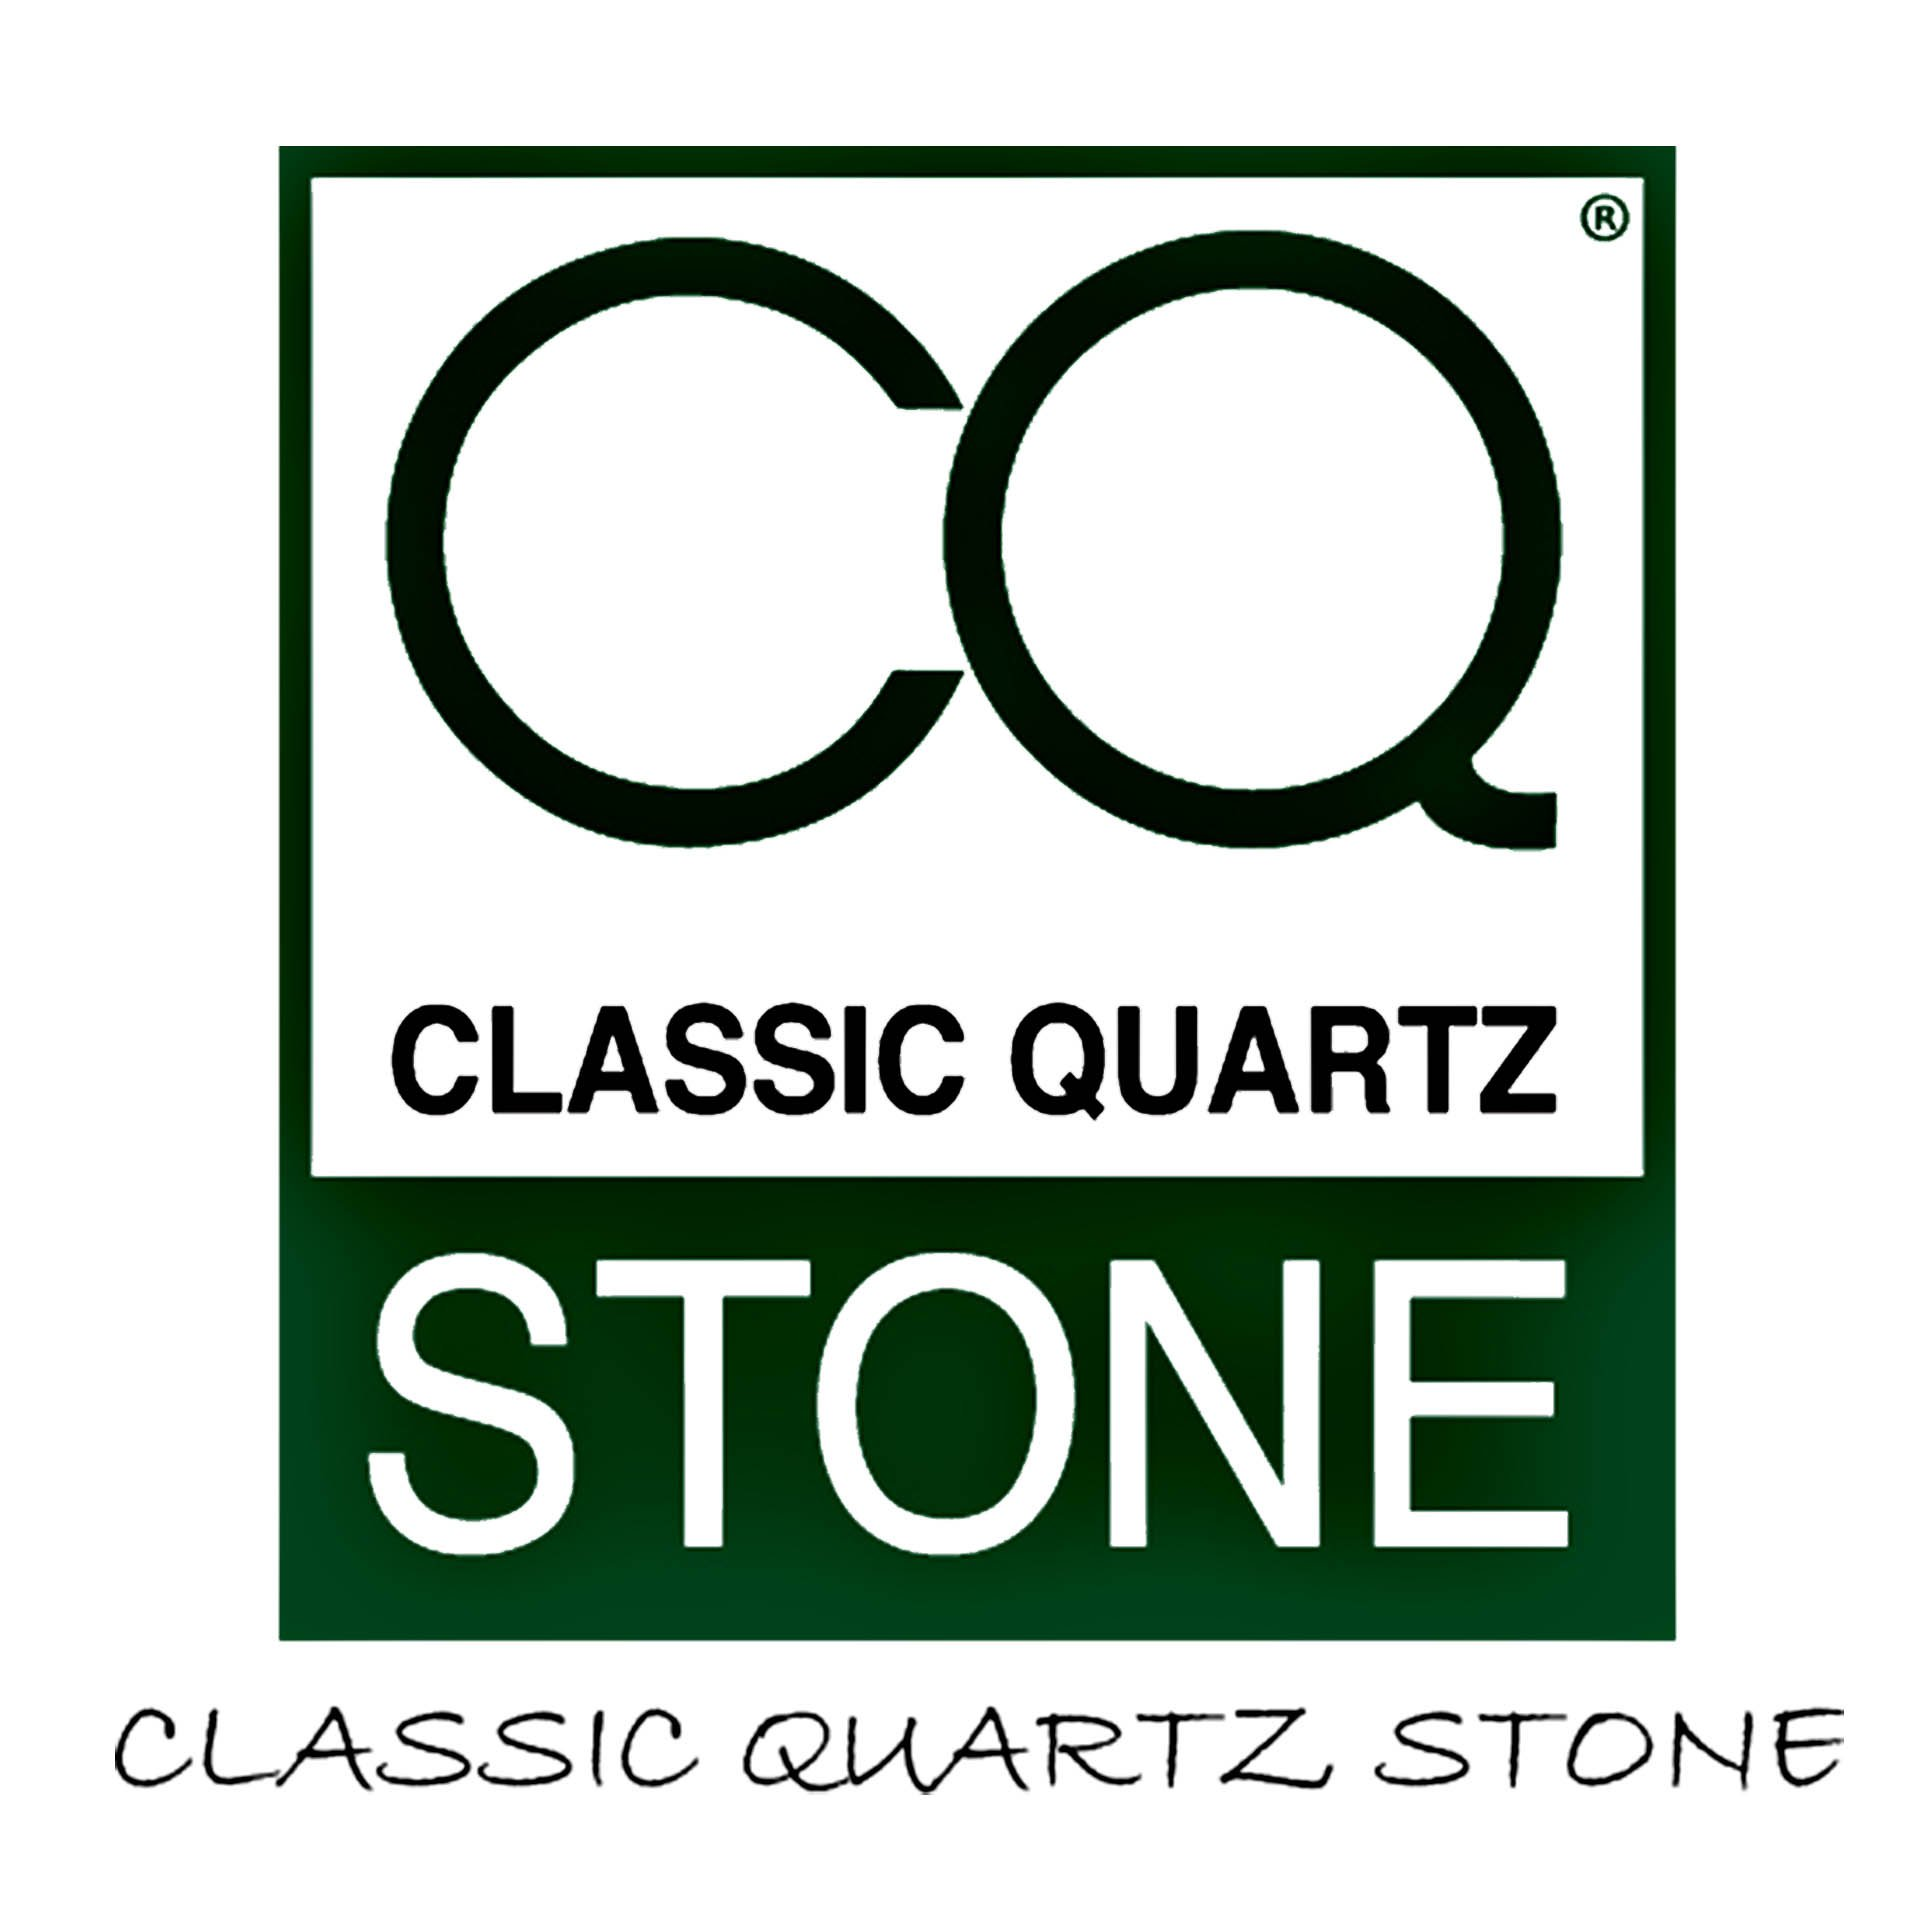 CQS Stone UK dedicated to Brett and Jade